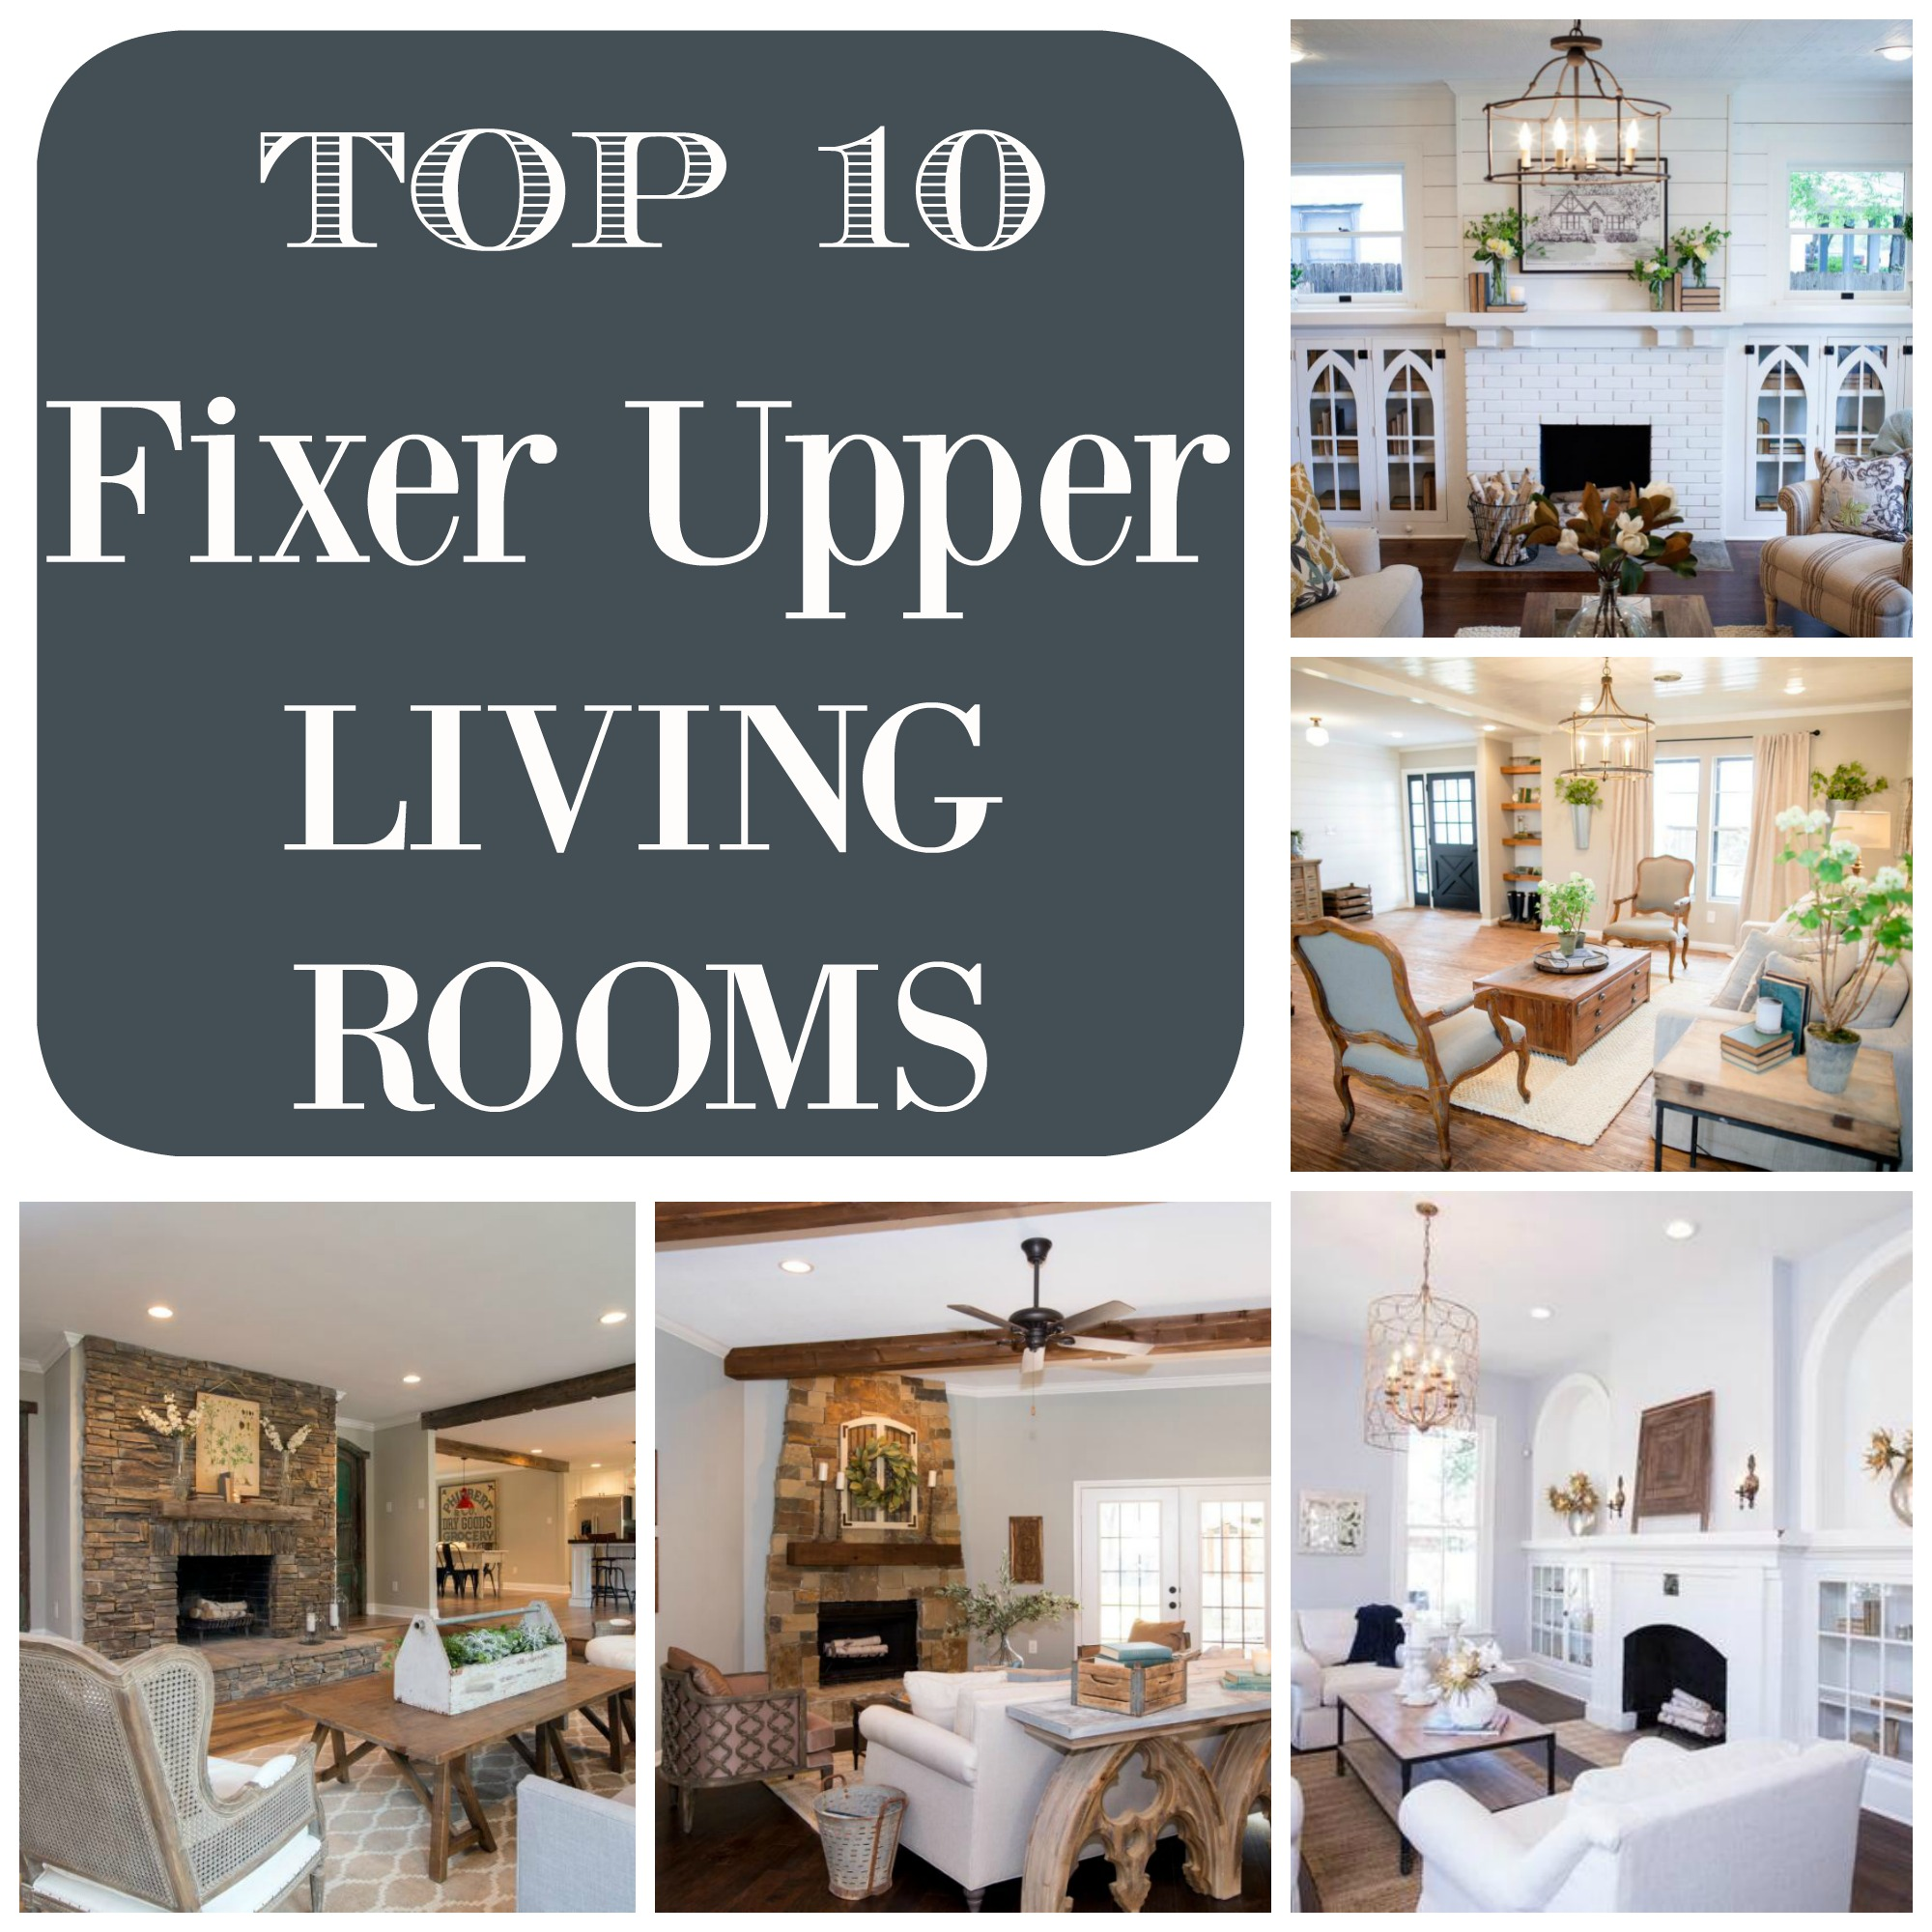 Design Ideas For Kitchen Bathroom Living Room: Top 10 Fixer Upper Living Rooms